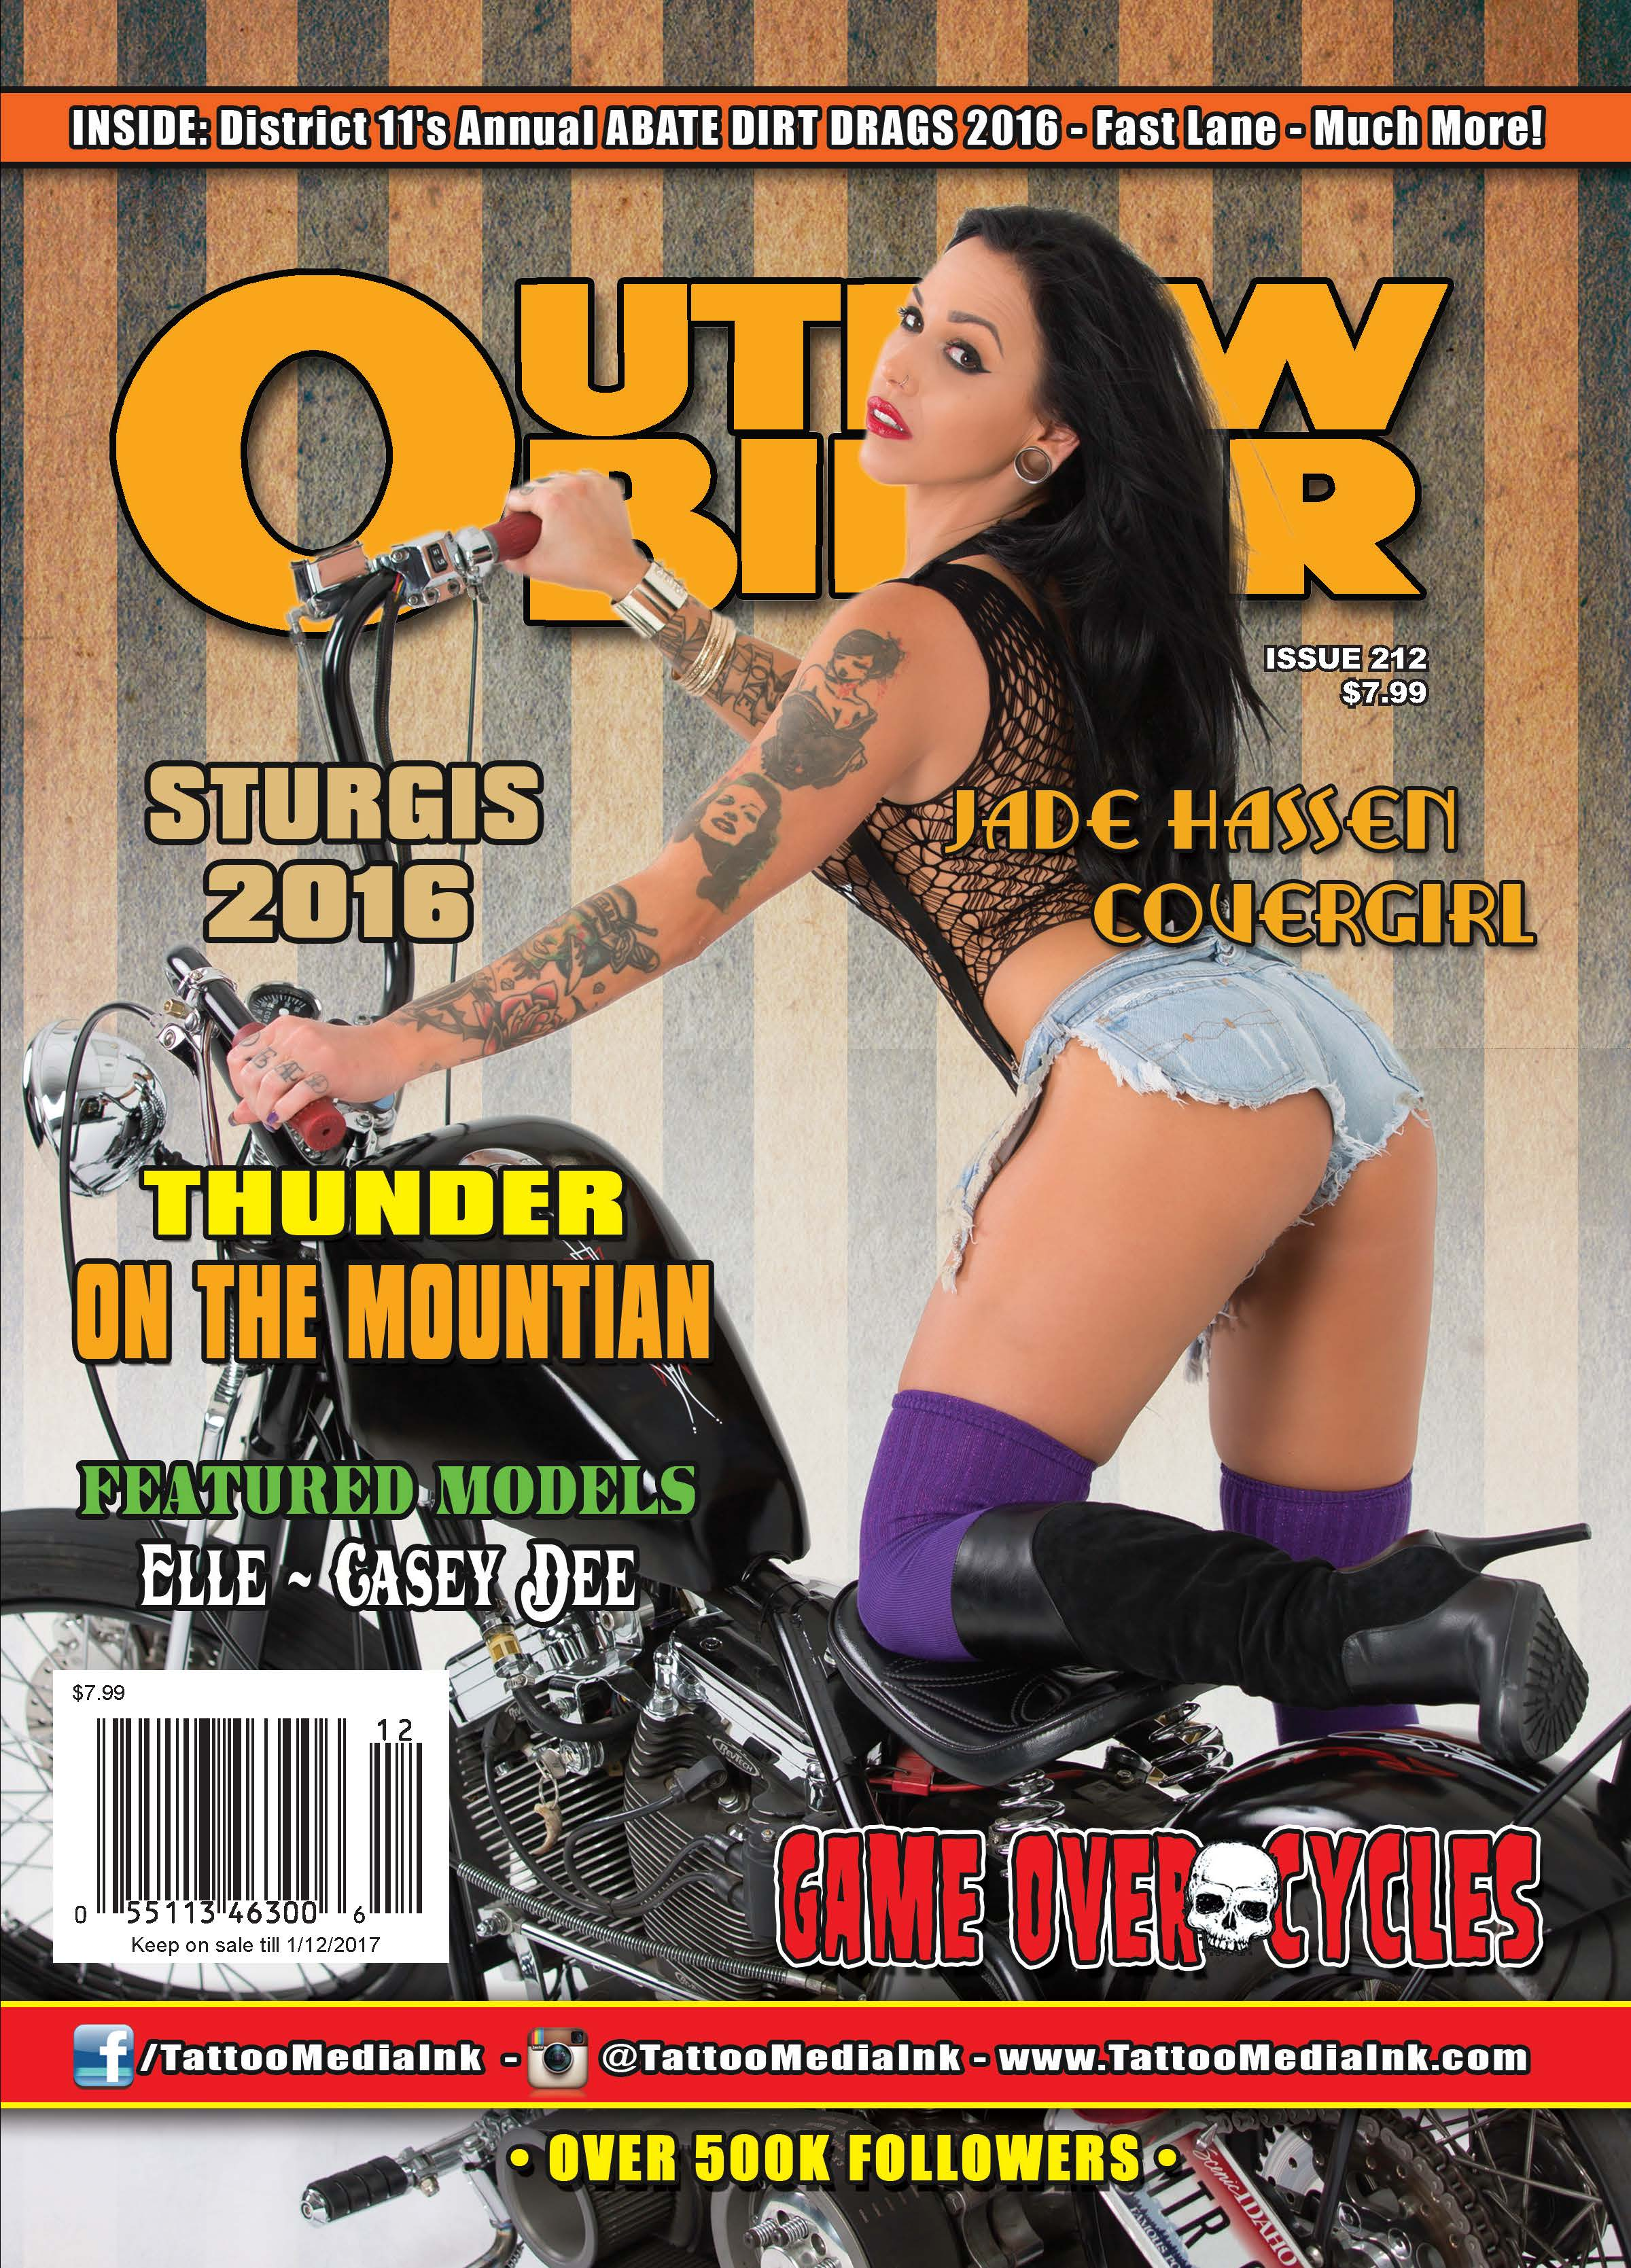 Outlaw Biker Magazine Issue #212 - Tattoo Media Ink | Publishers of ...